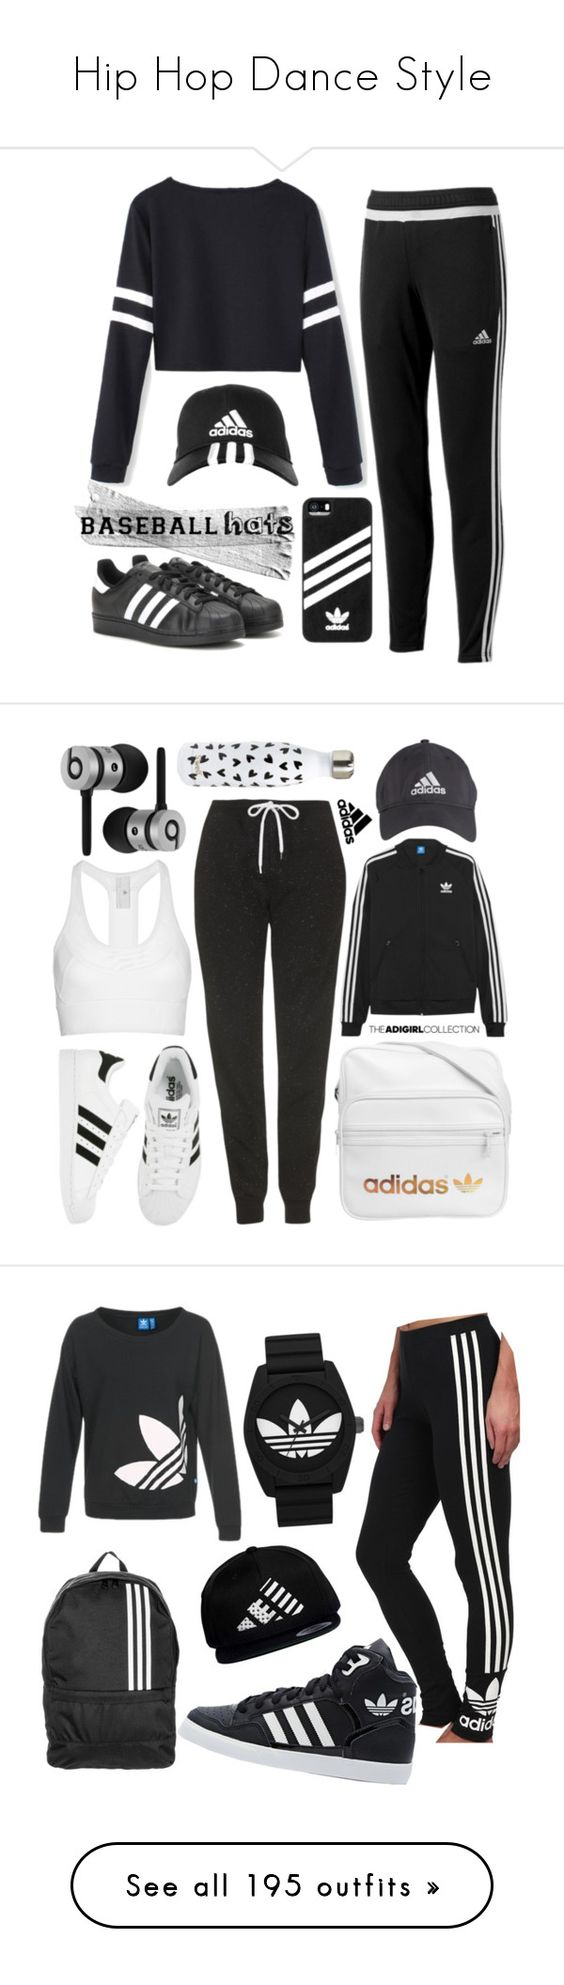 """Hip Hop Dance Style"" by yours-styling-best-friend ❤ liked on Polyvore featuring dance, WhatToWear, HipHop, hiphopdance, adidas, baseballcap, baseballhats, Topshop, adidas Originals and Beats by Dr. Dre"